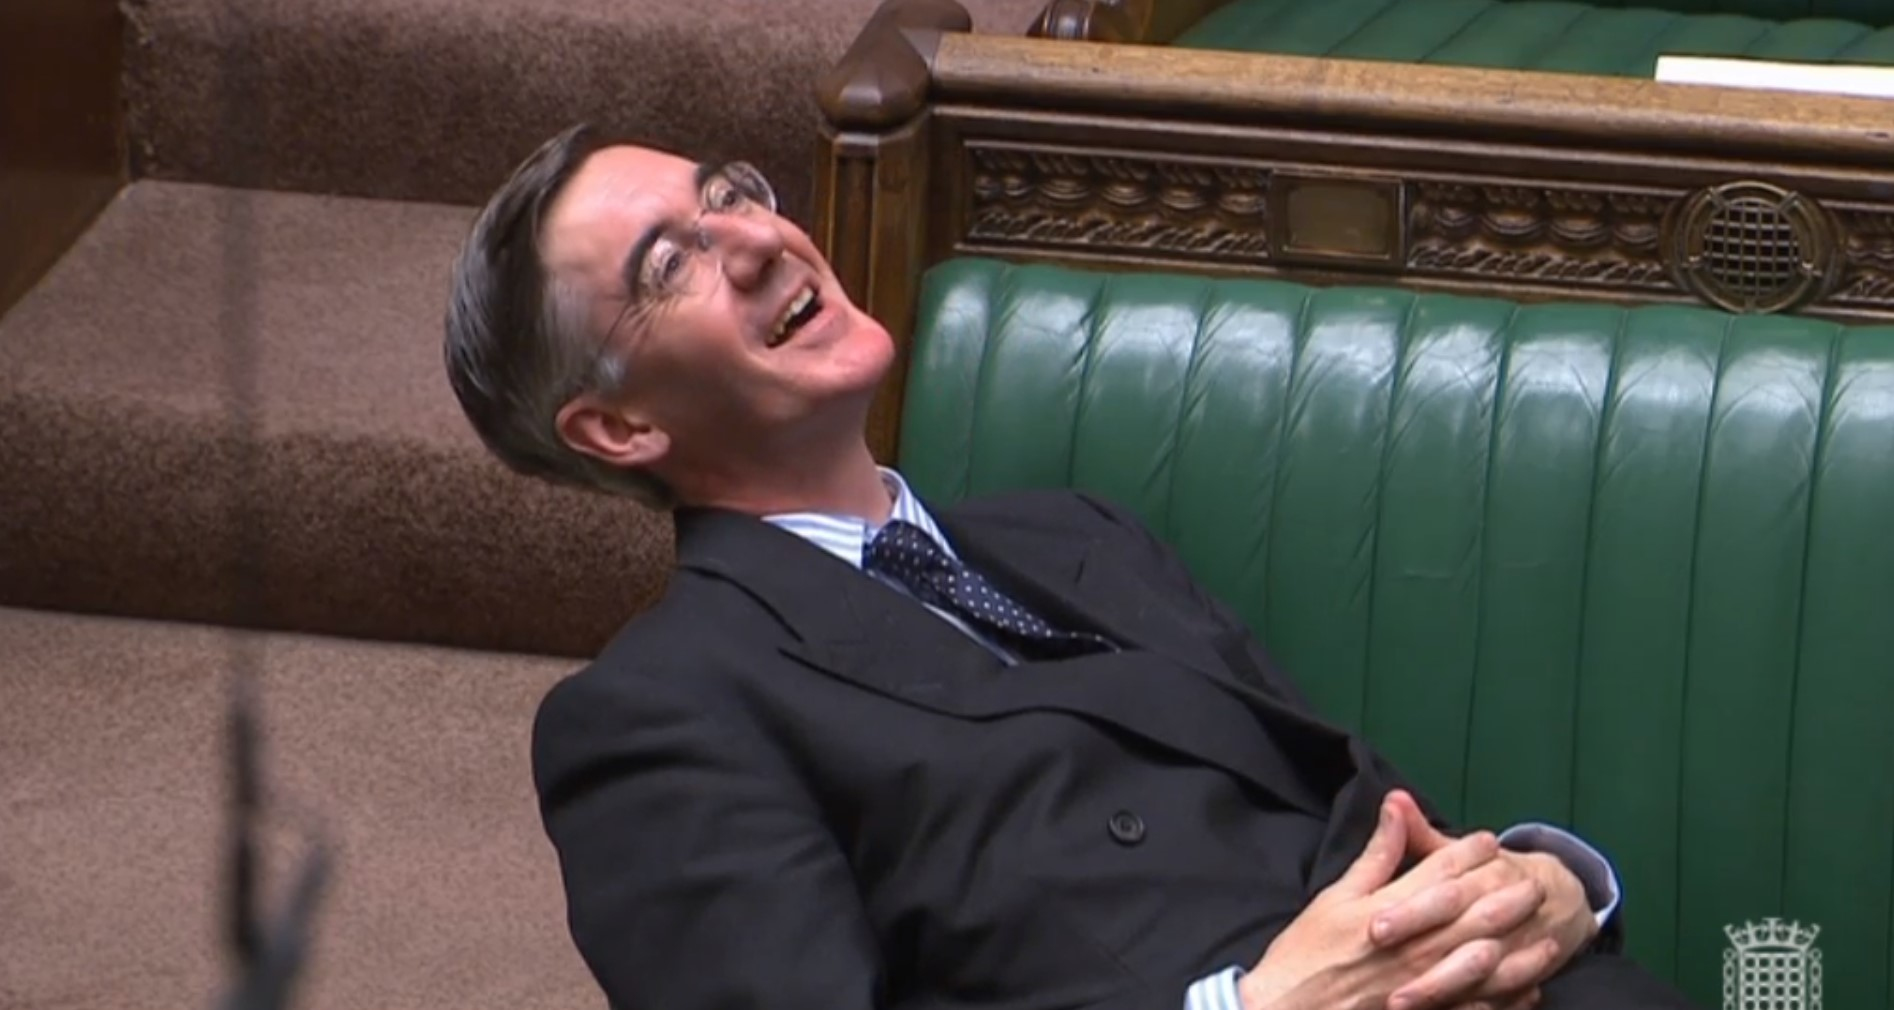 Jacob Rees-Mogg lounges on Commons benches during Brexit debate